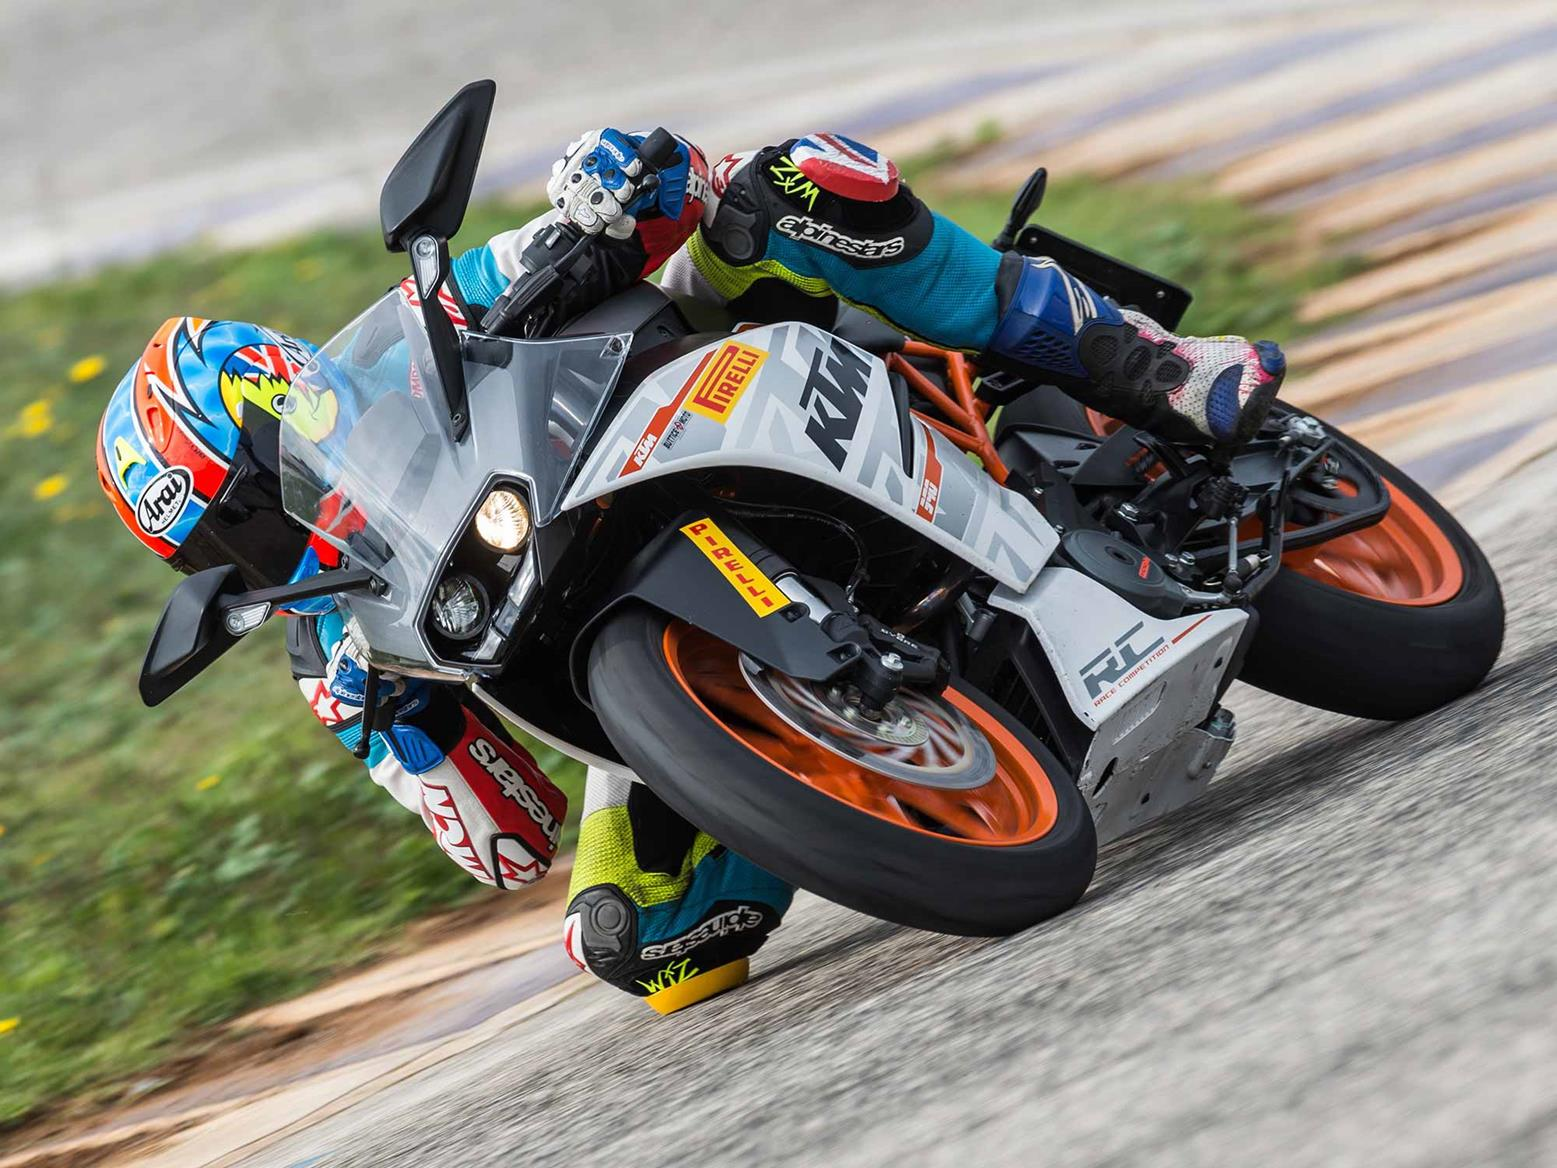 Riding the KTM RC390 on track